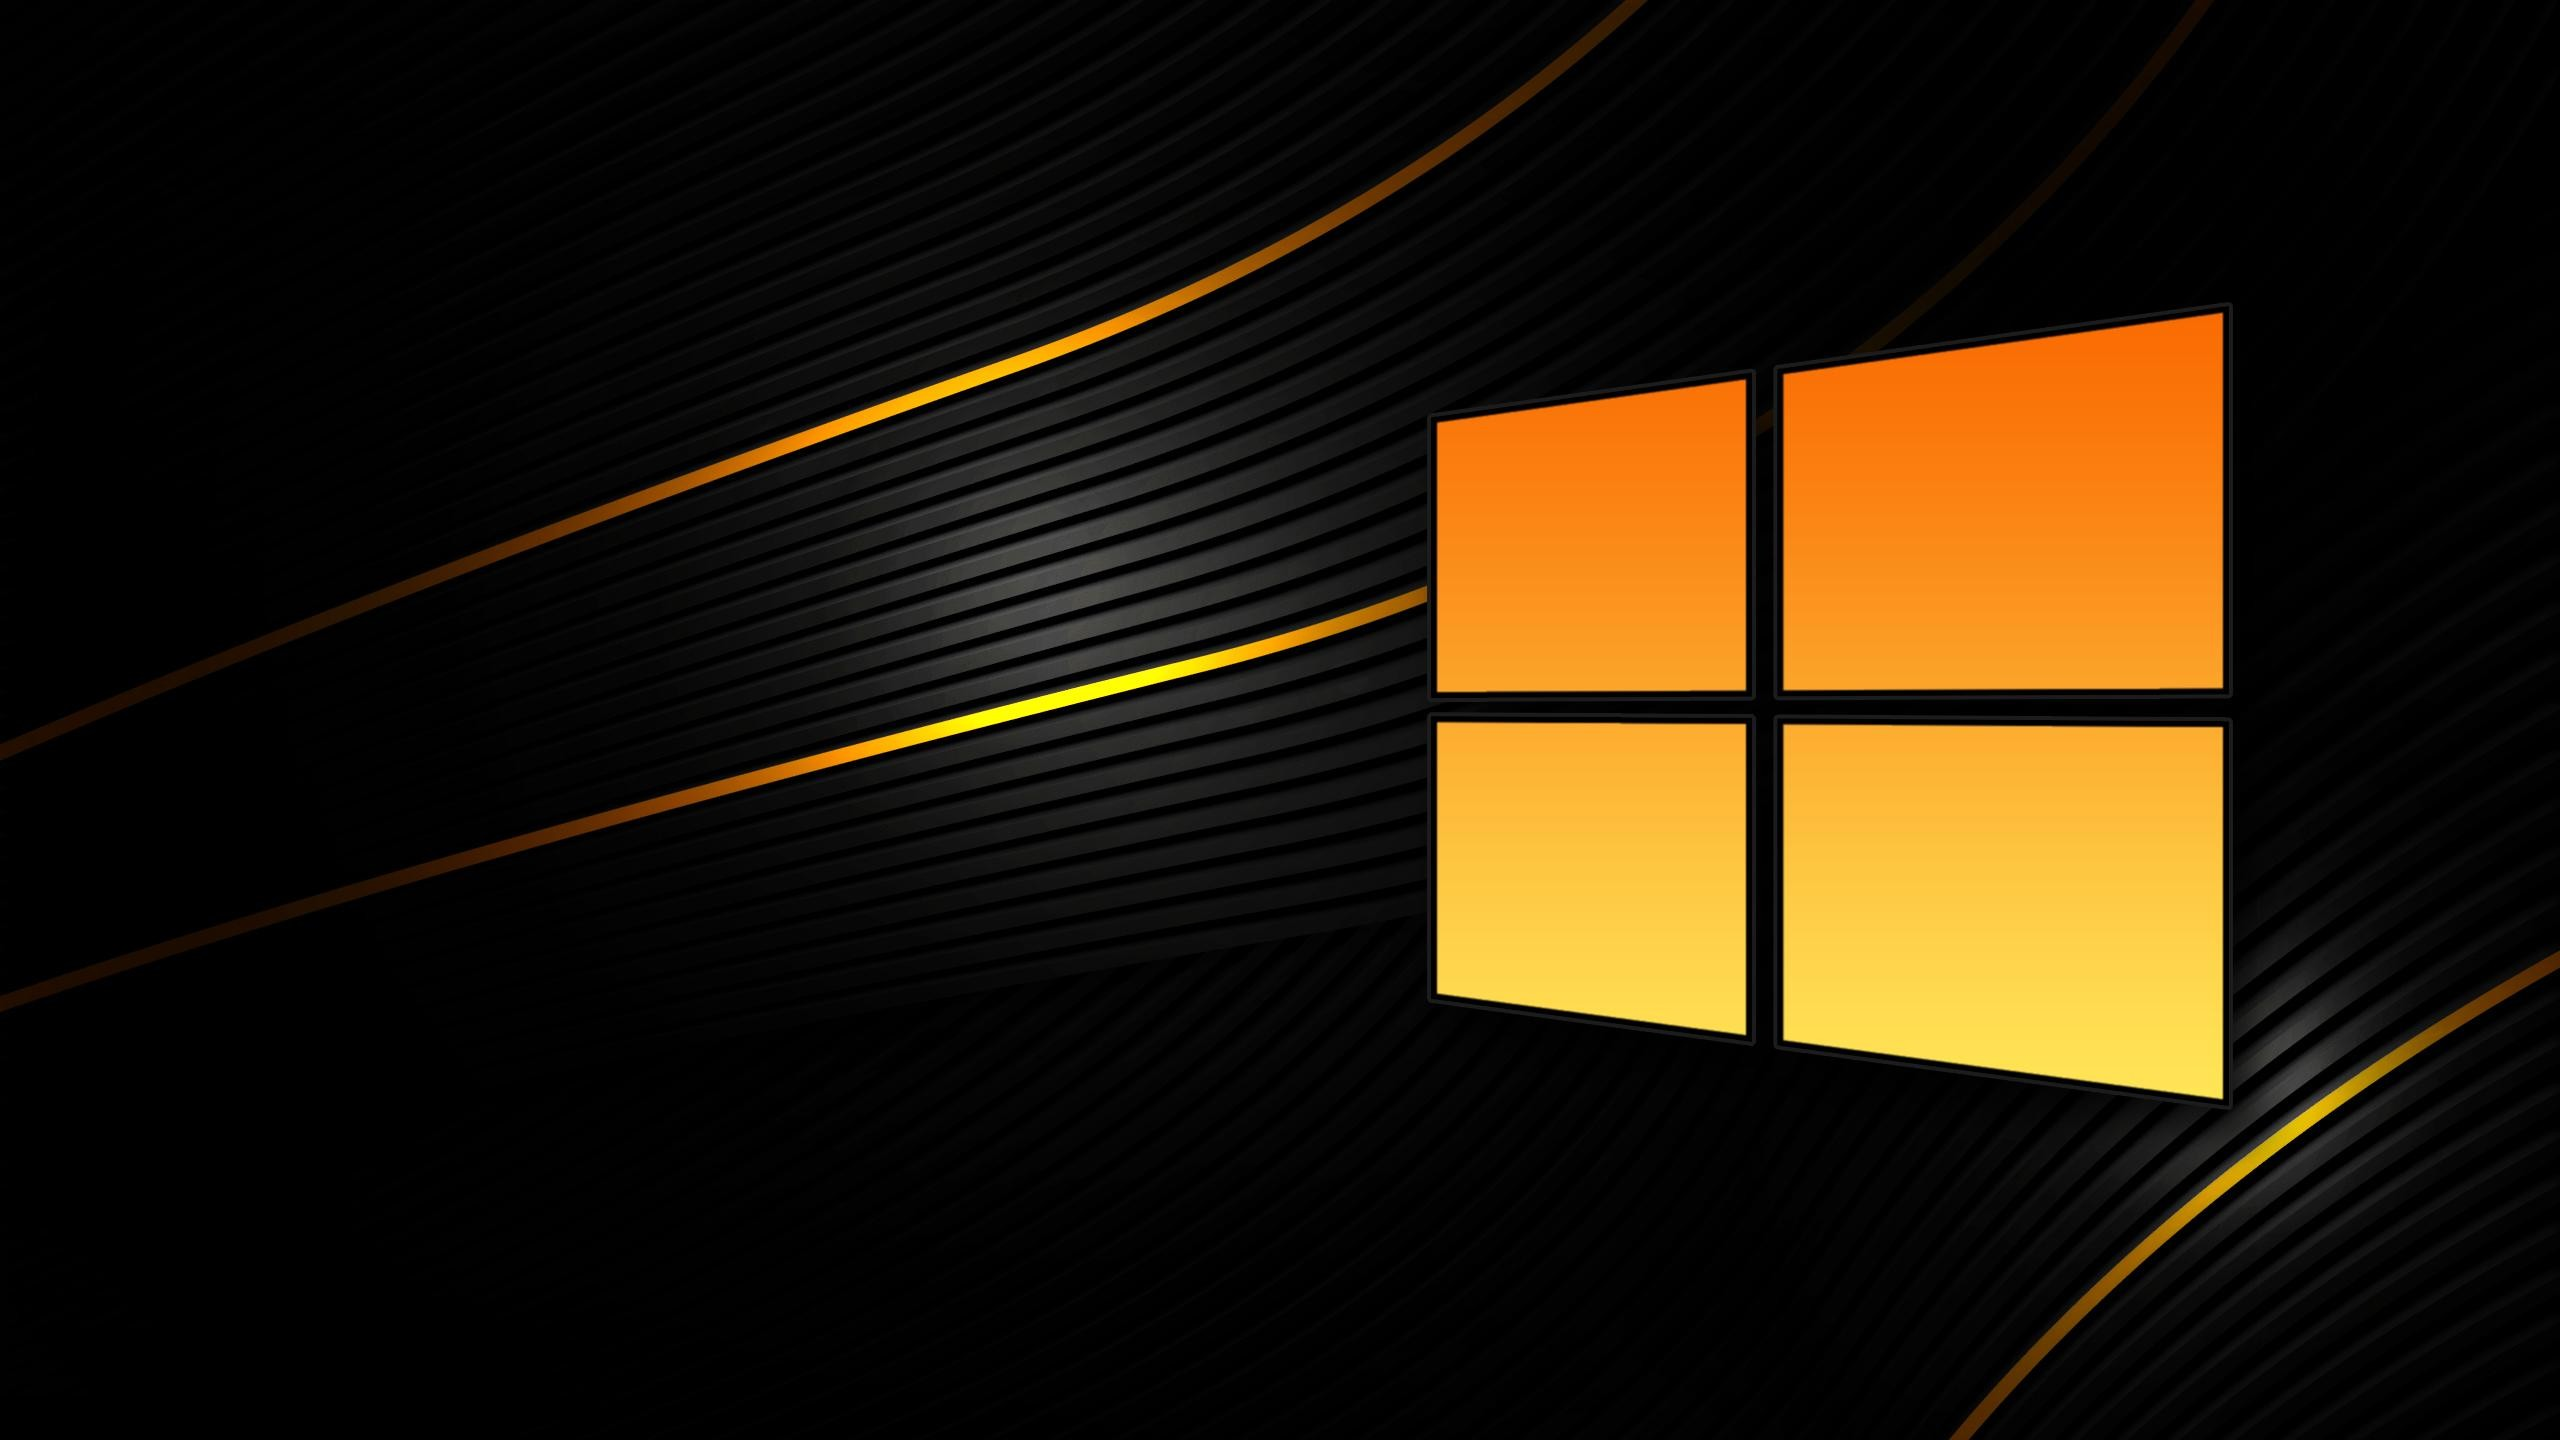 2560x1440 Cool-Windows-Group-wallpaper-wp6403973